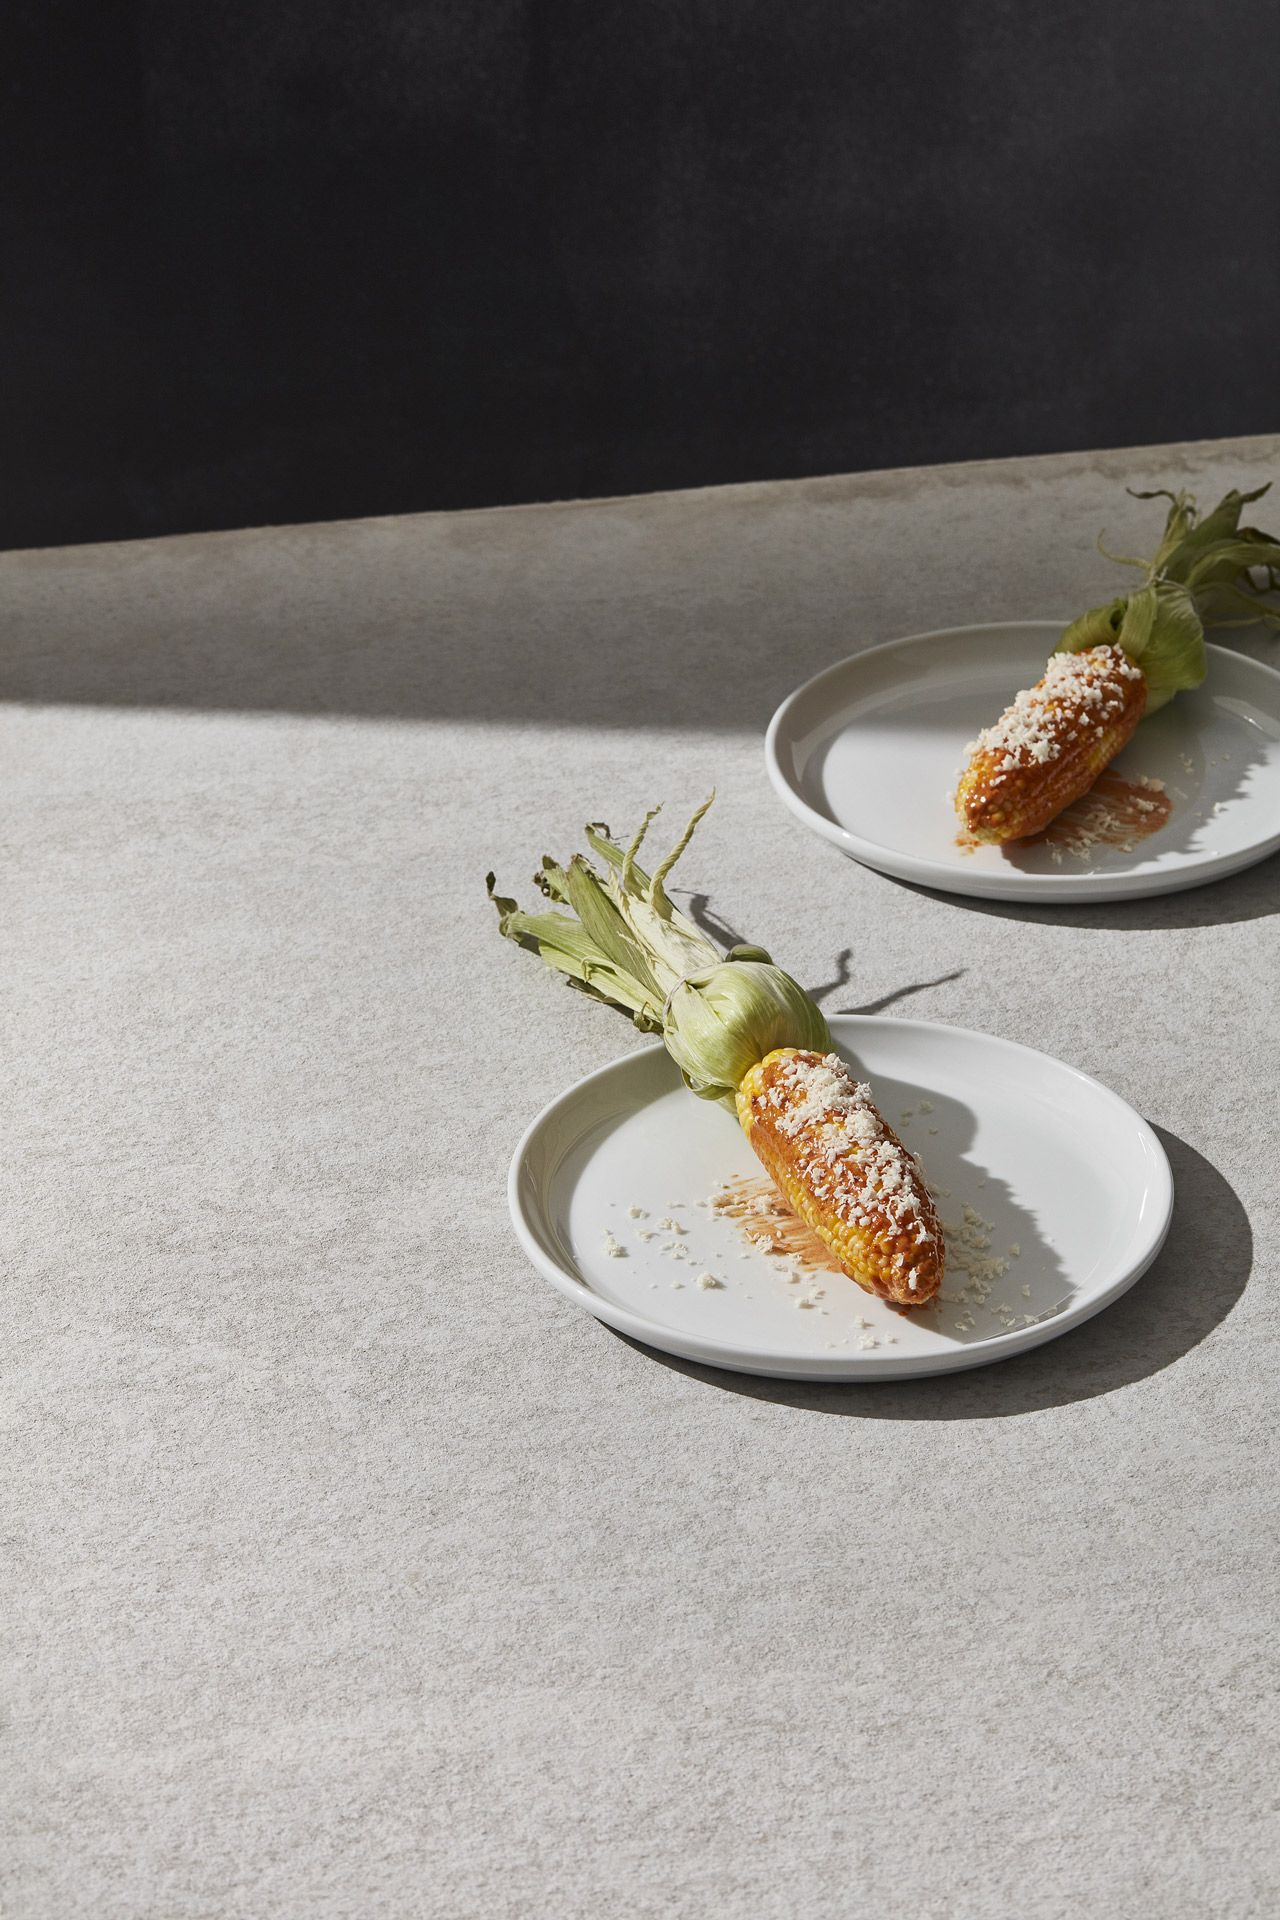 concrete table two plates with corn sprinkled with parmesan cheese on top on dark green background by Mathieu Levesque for enRoute Magazine Air Canada